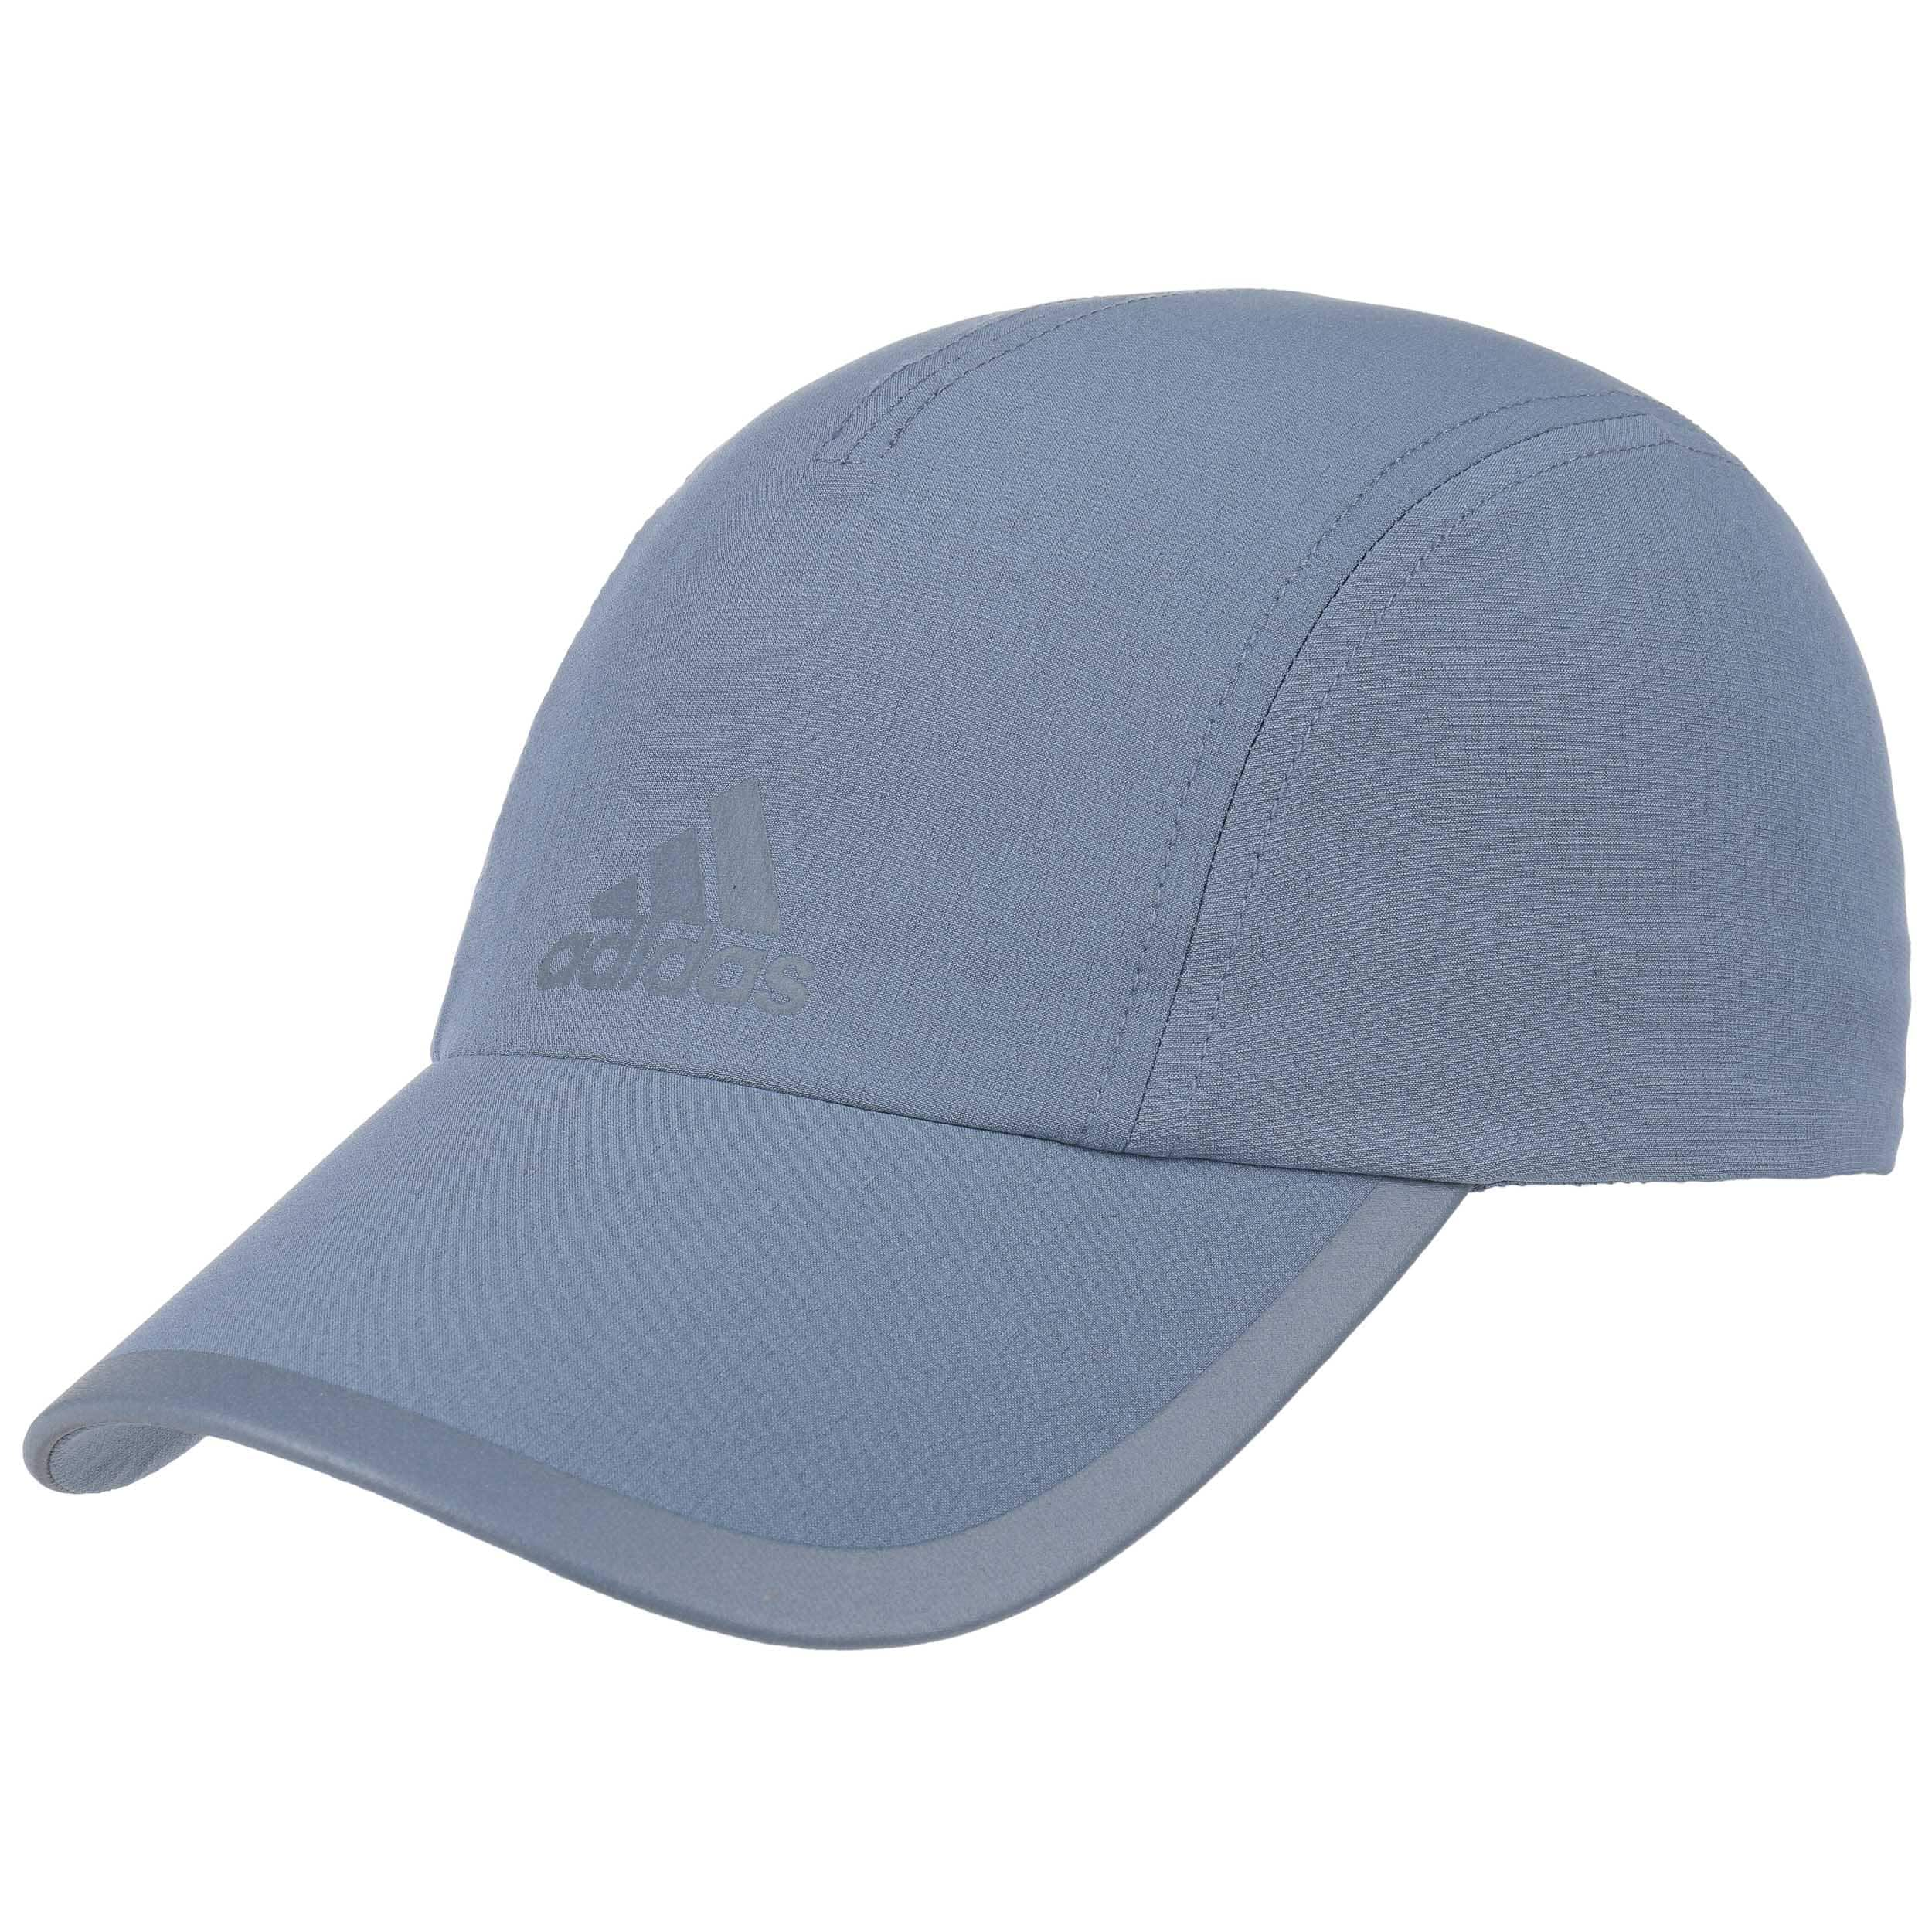 ... Climalite Running Cap by adidas - blue 5 ... 7a25dc530ad